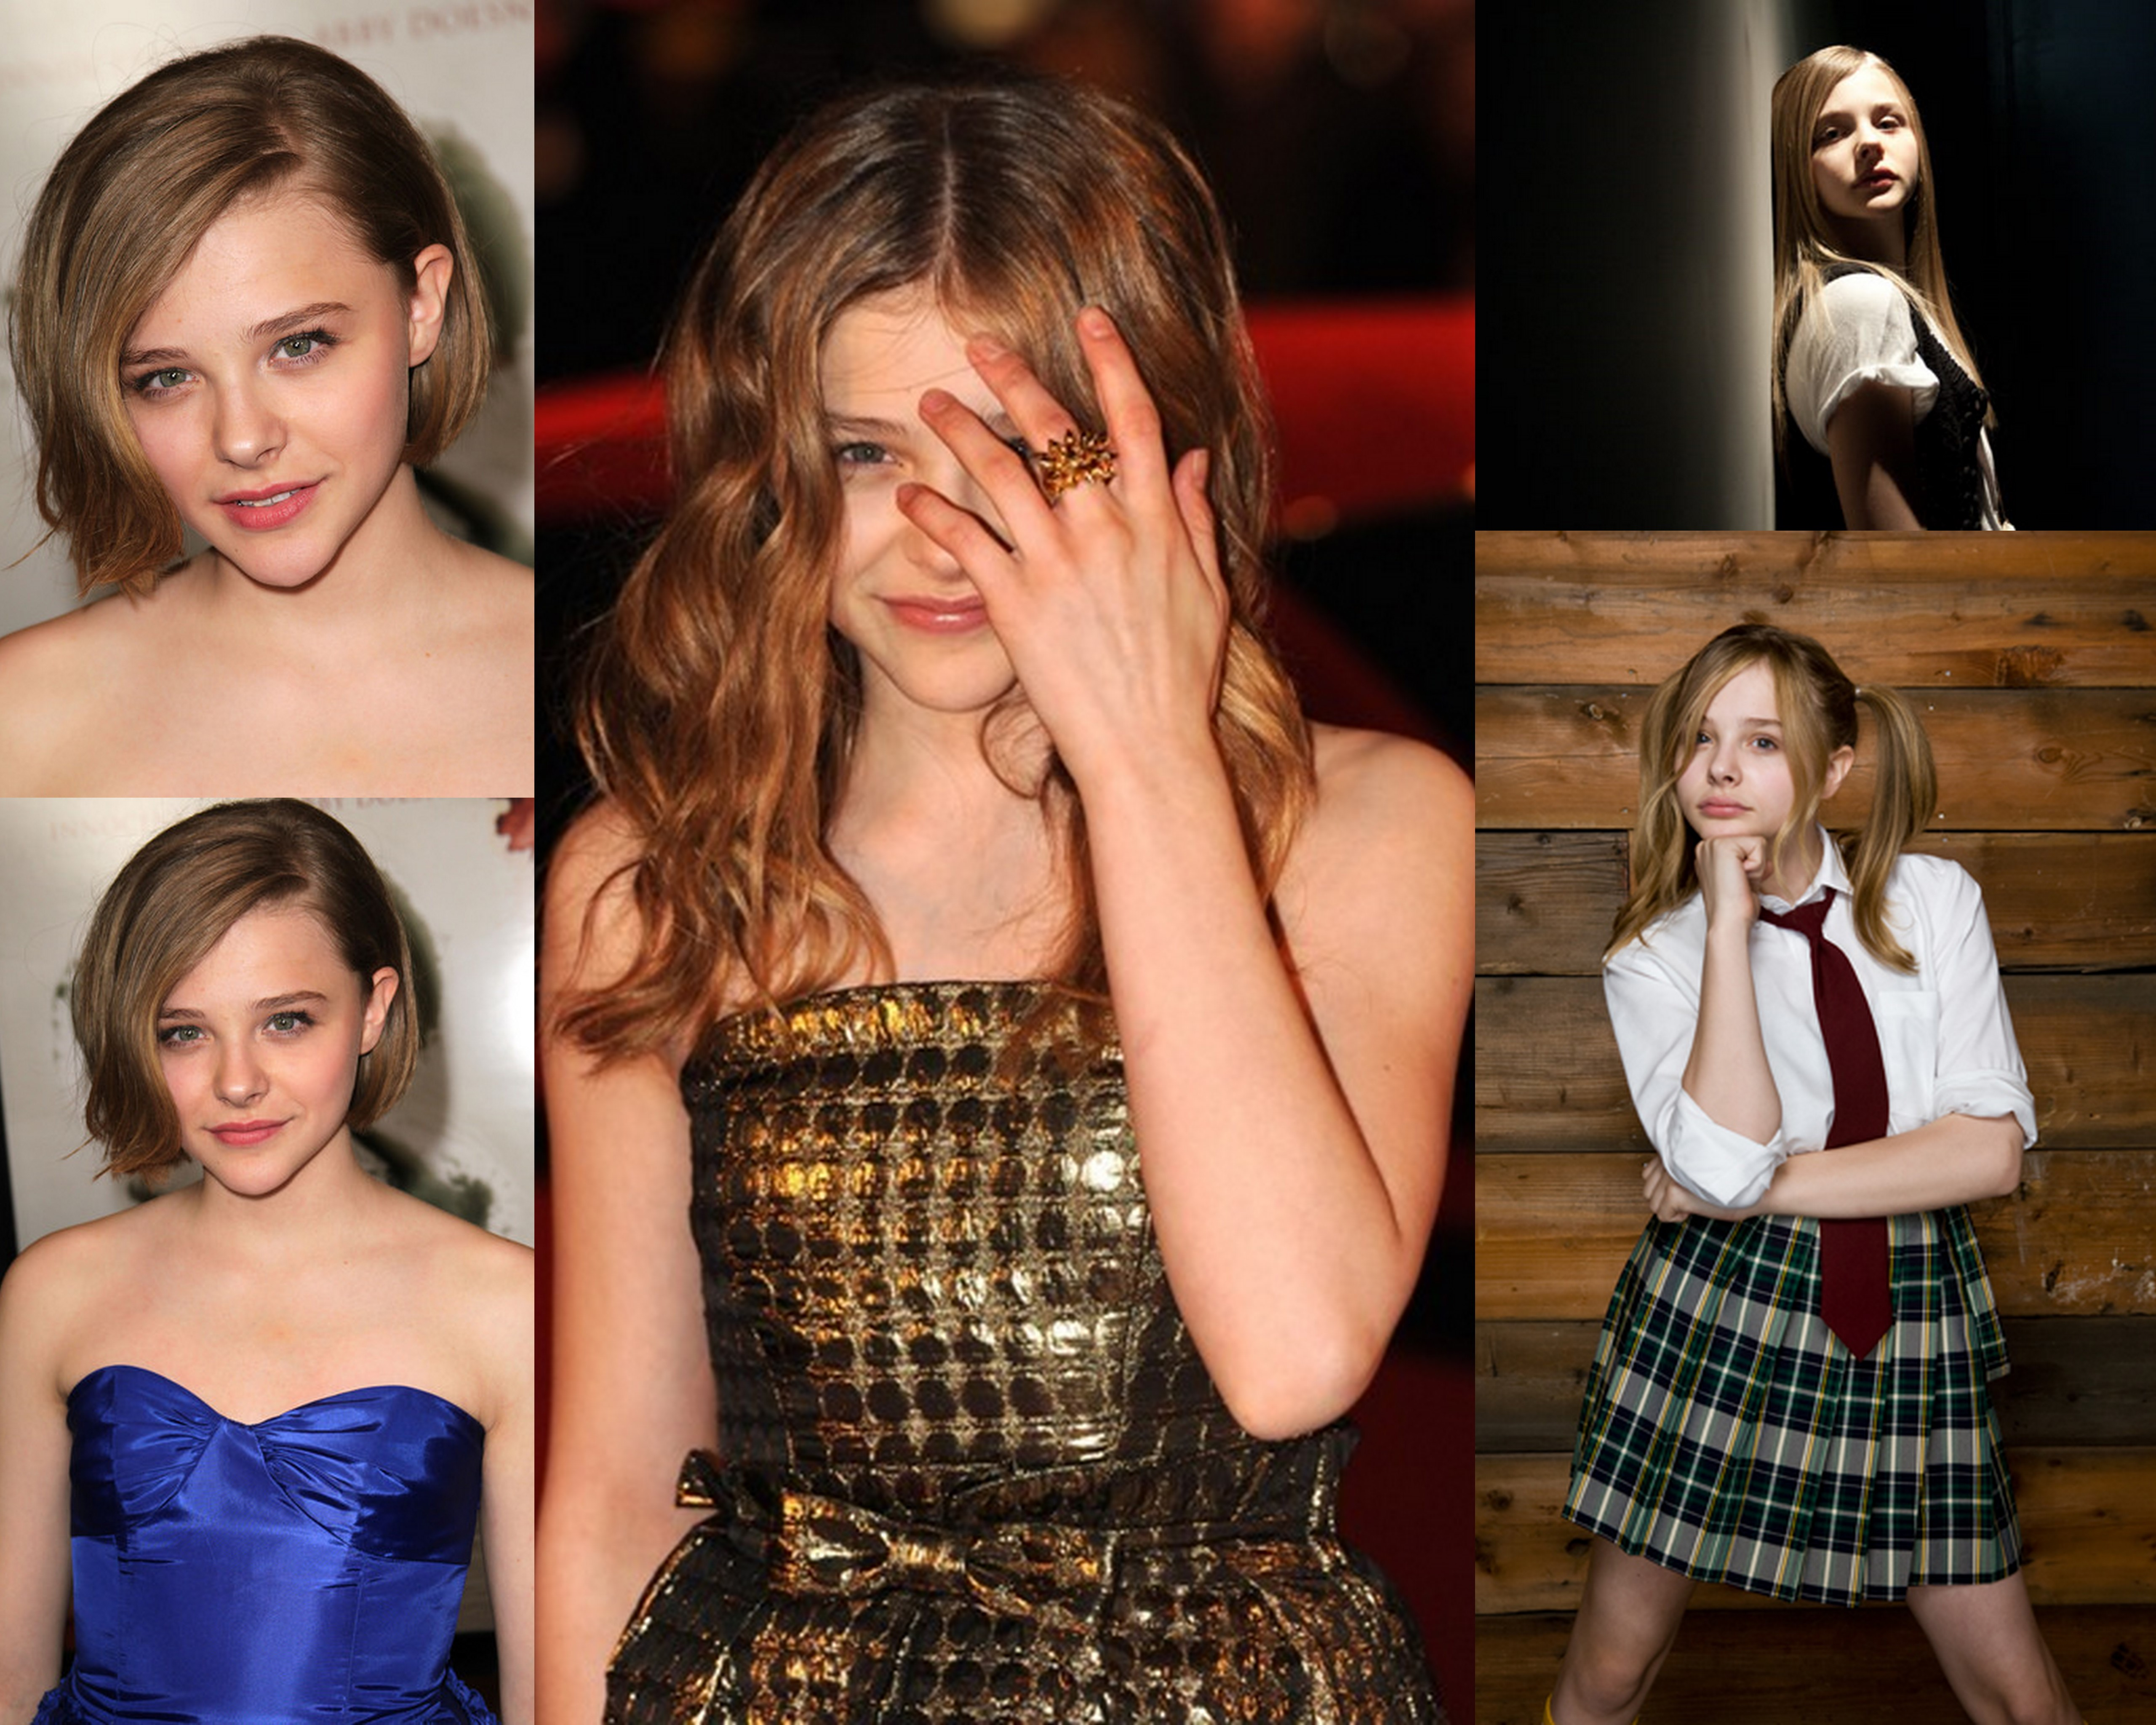 Chloë Grace Moretz Collage 2010-10-11 Let Me In